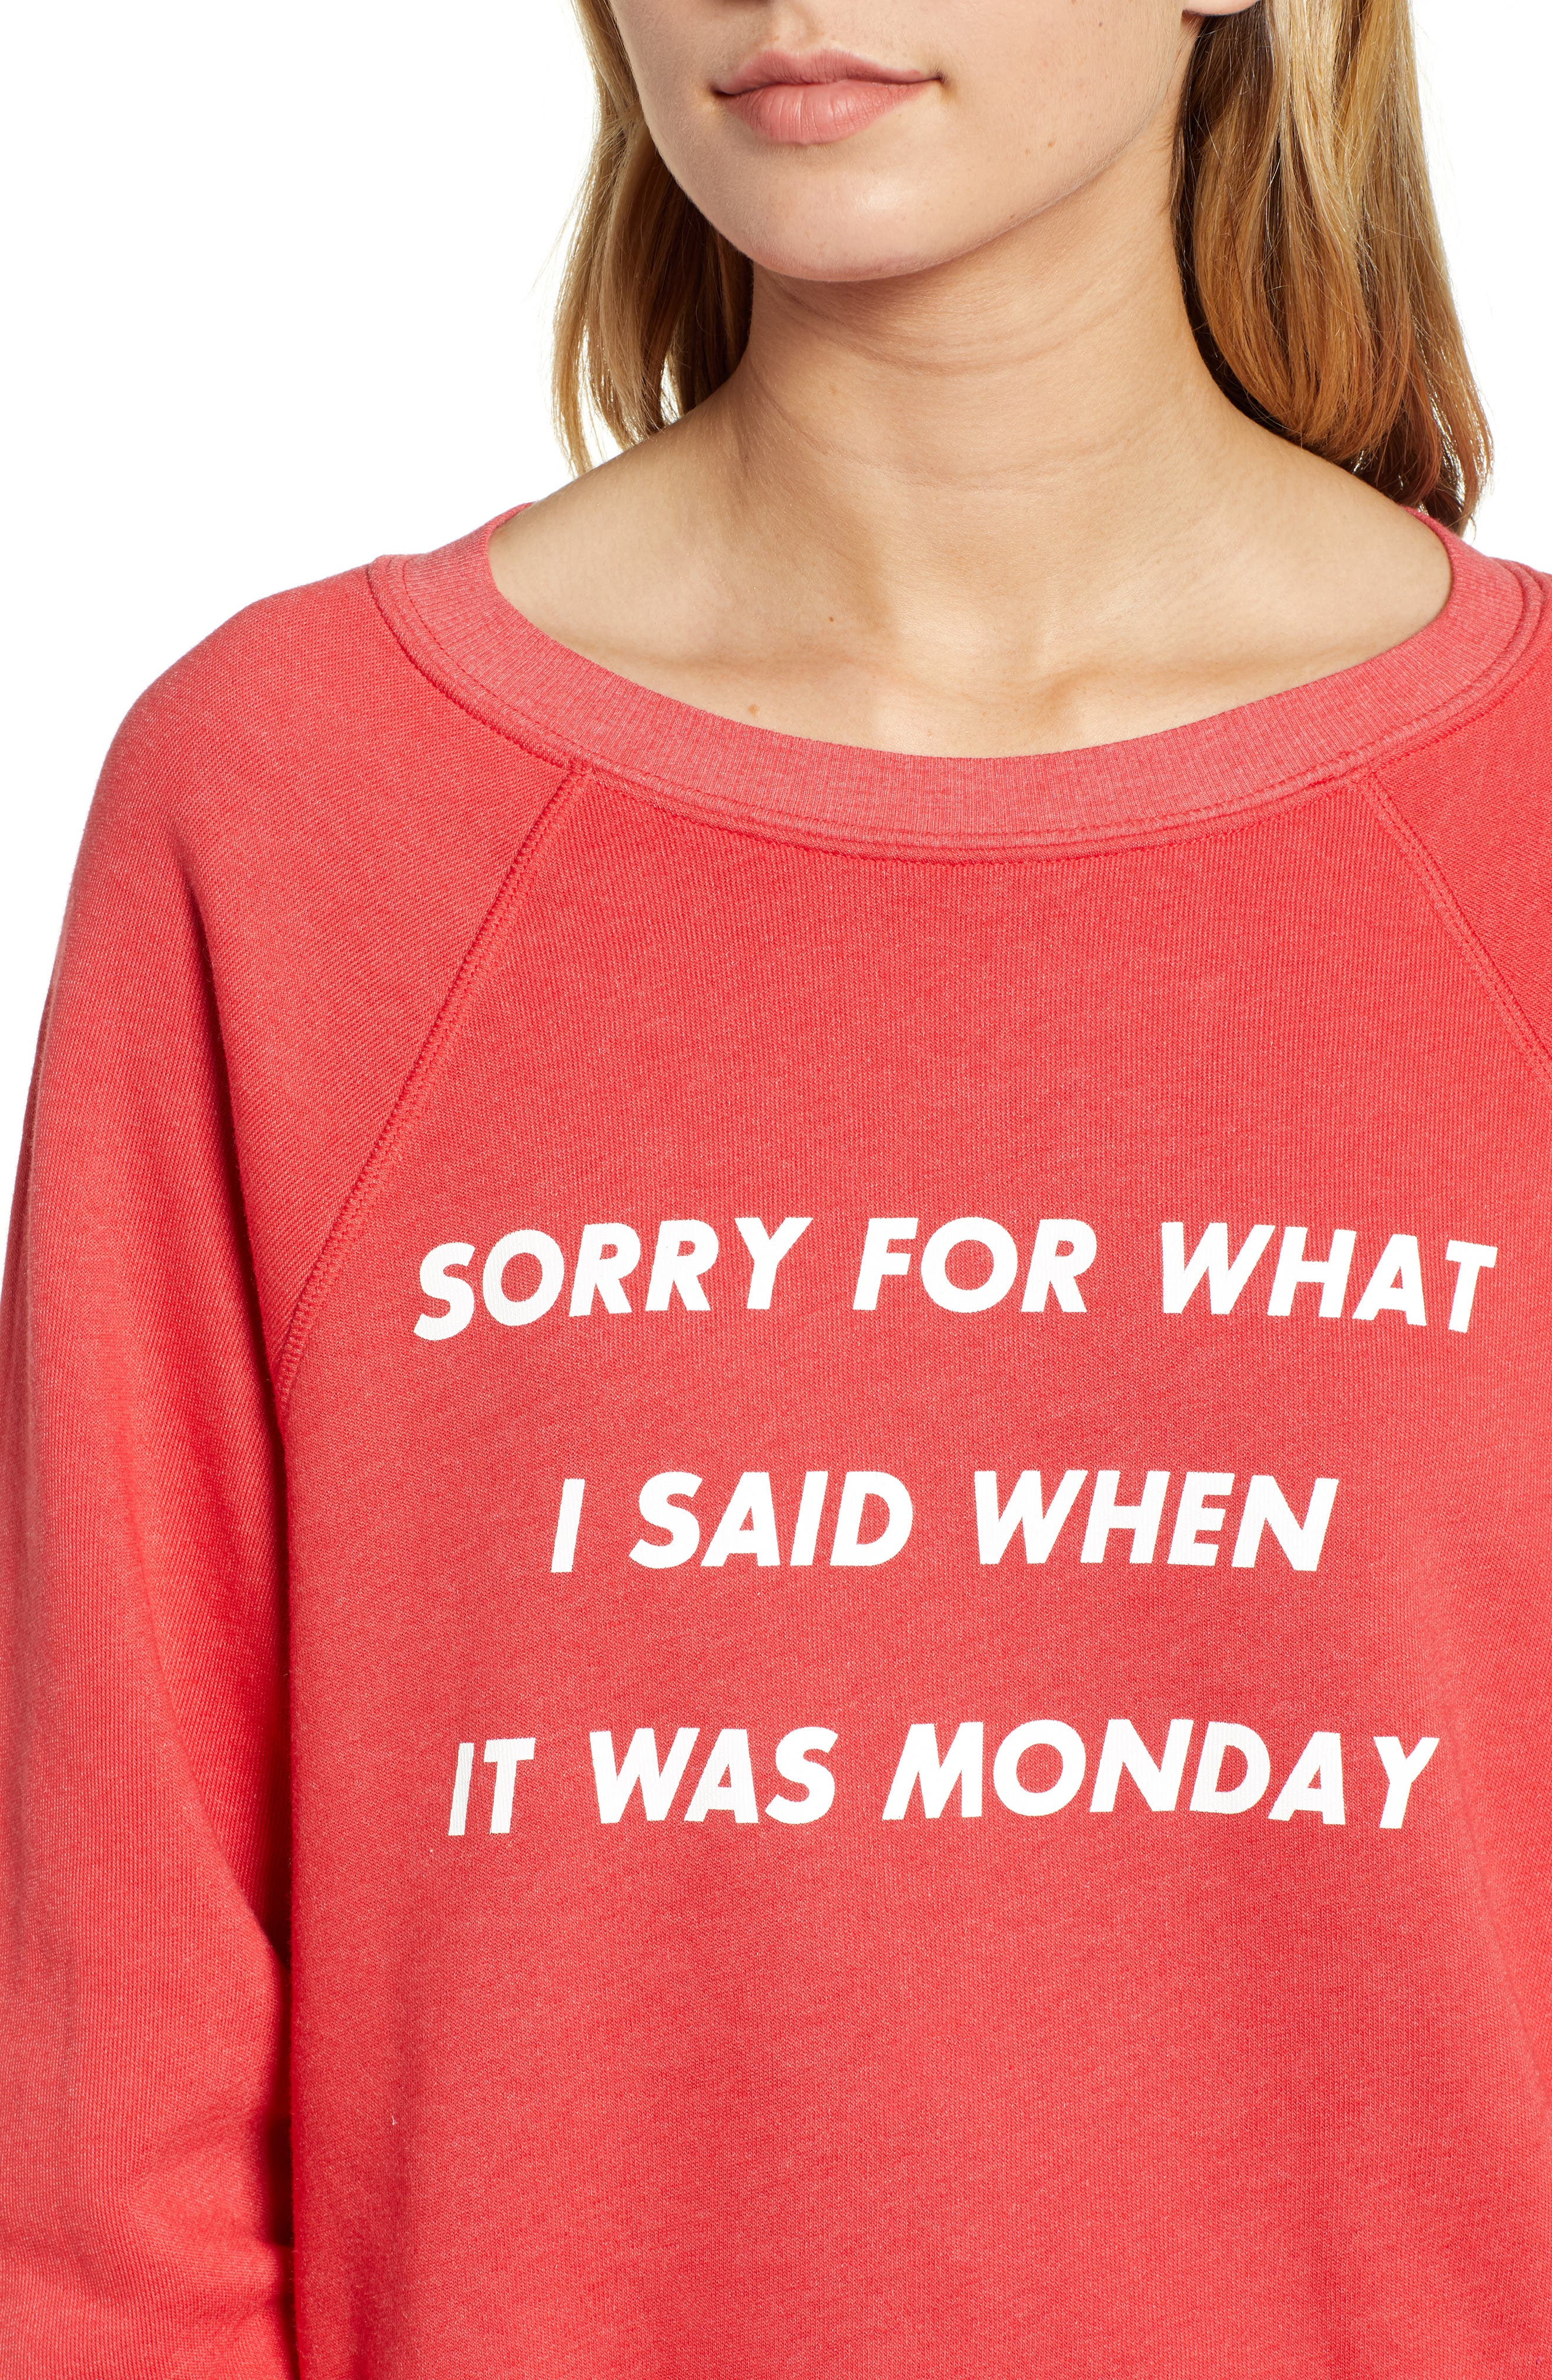 Monday Sommer Sweatshirt,                             Alternate thumbnail 4, color,                             SCARLET